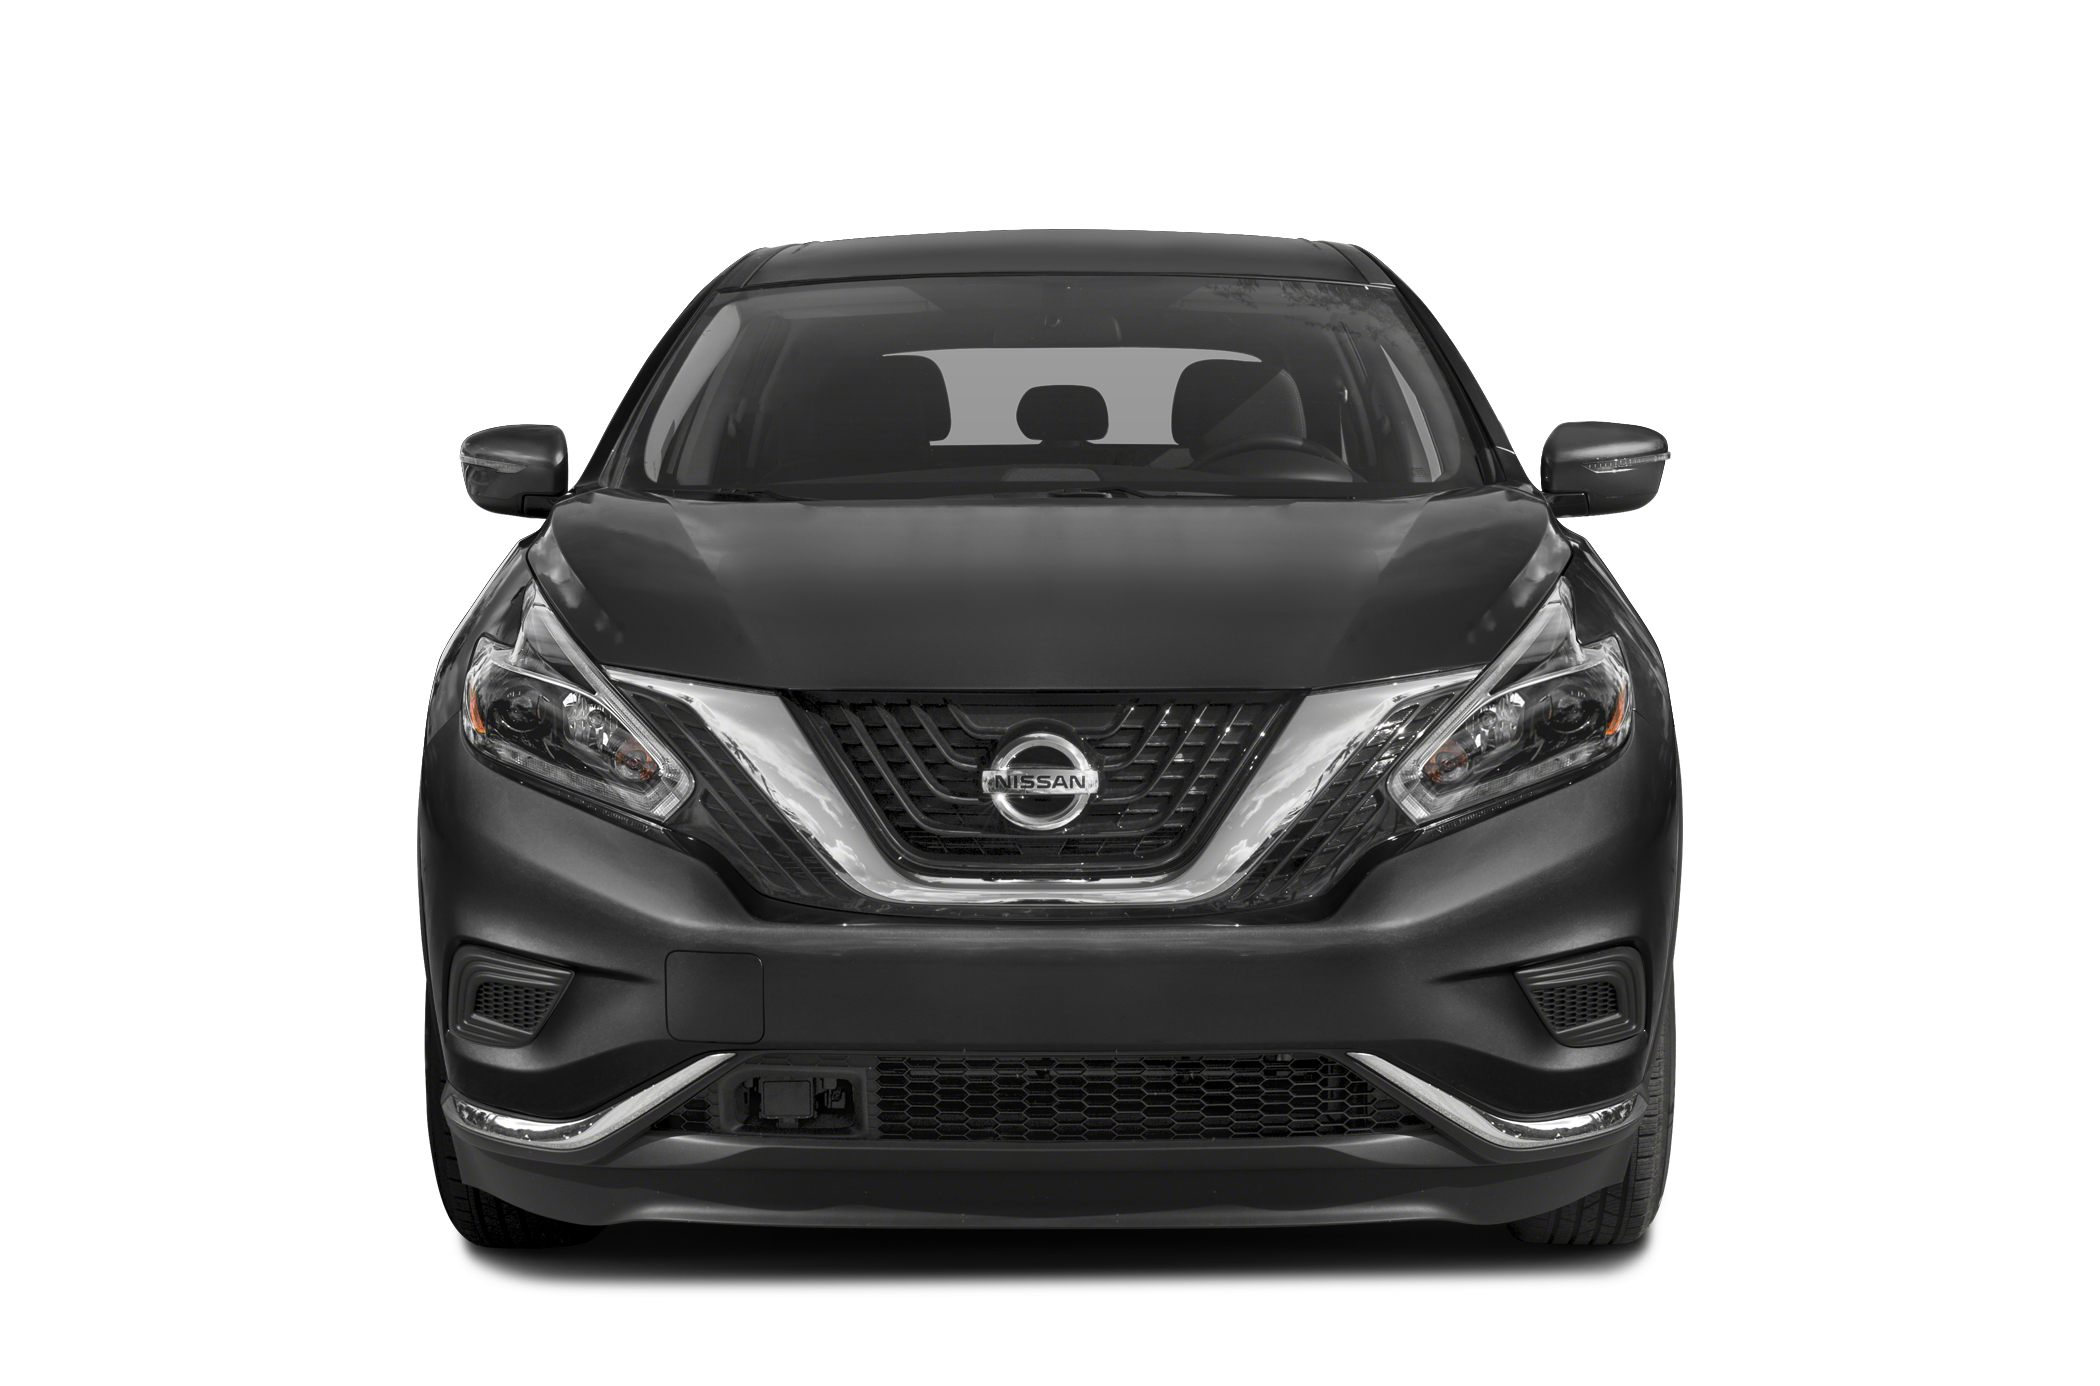 2018 Nissan Murano Styles Amp Features Highlights